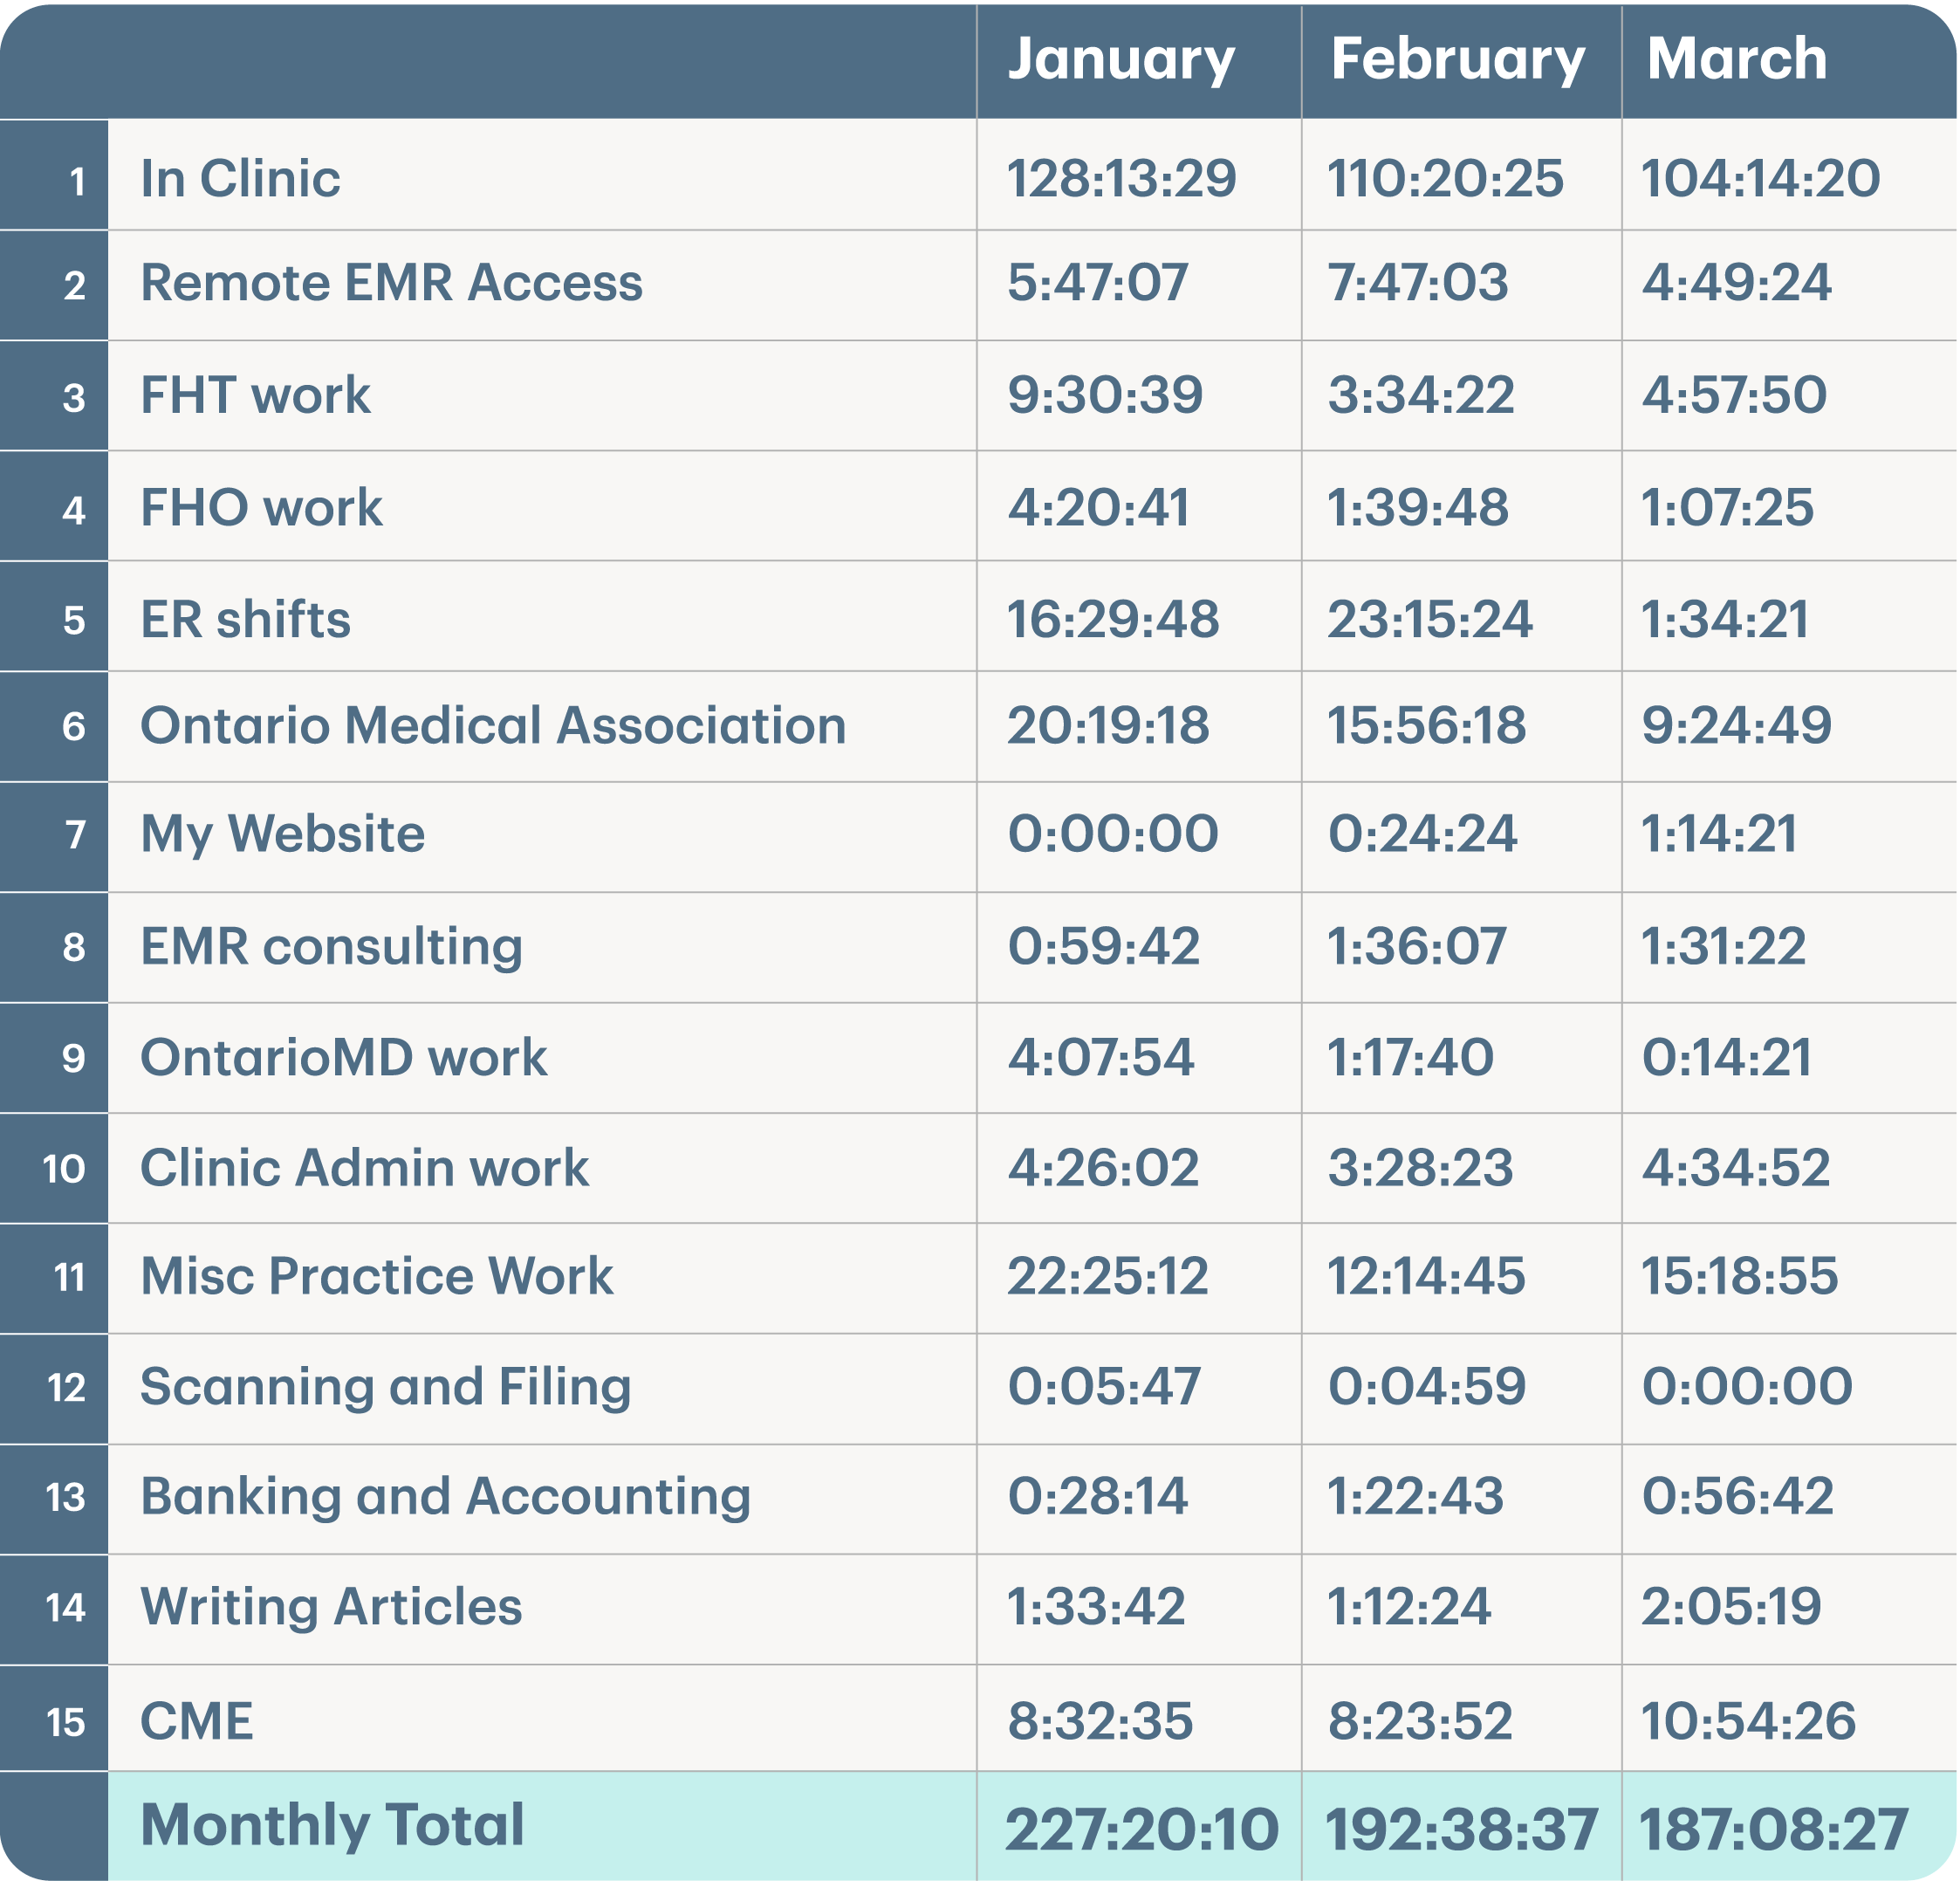 A spreadsheet demonstrating hours worked at various tasks over a three month period.